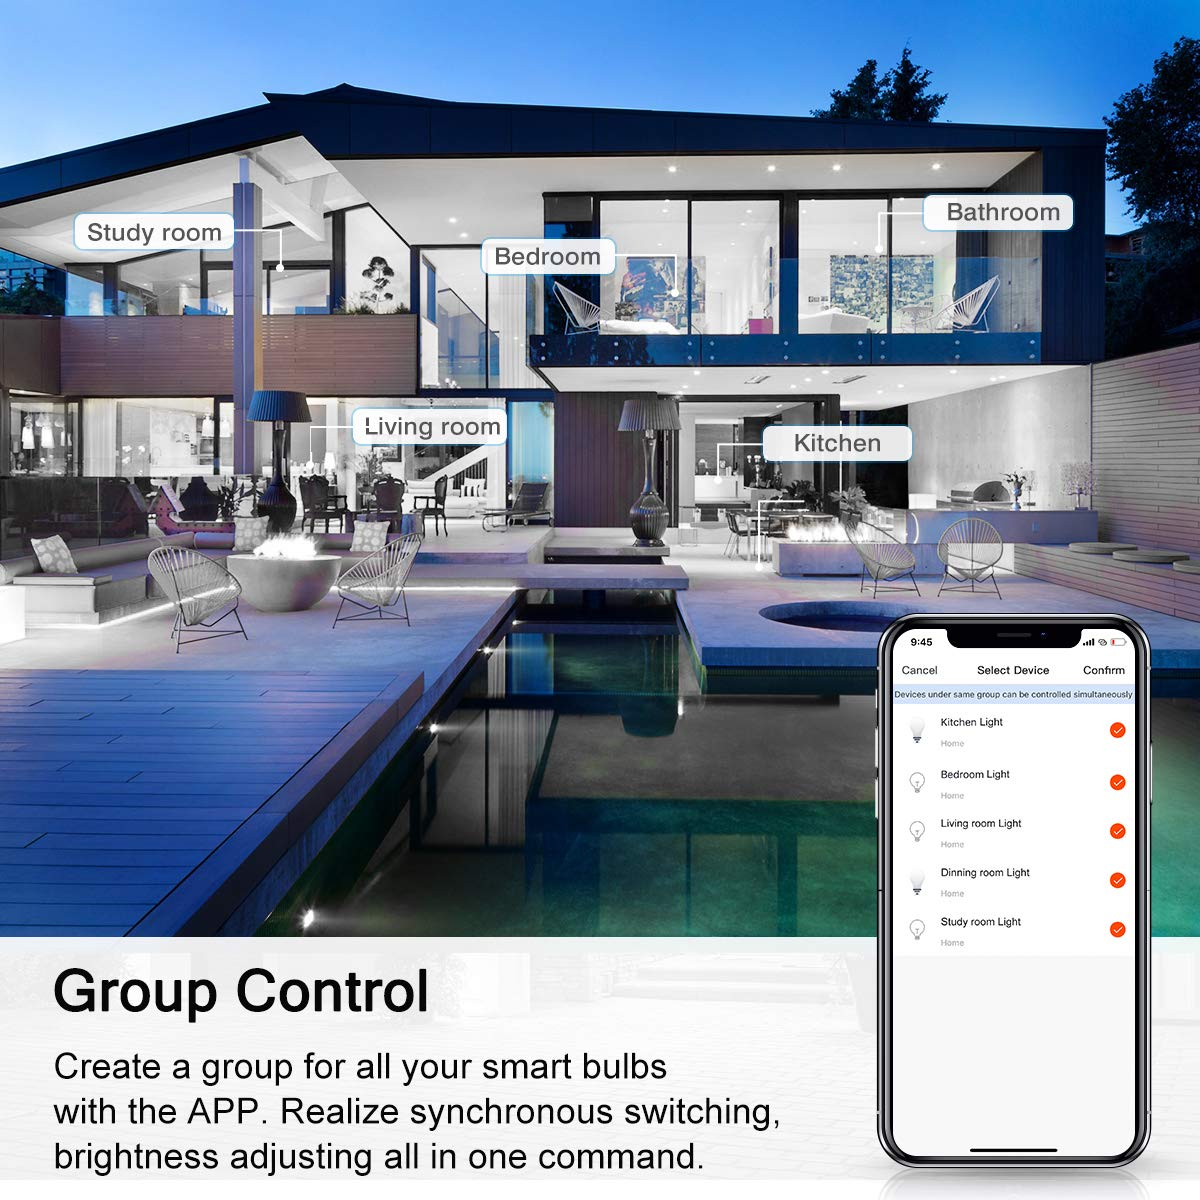 4W = 50W WiFi LED Light Bulb LOHAS LED WiFi Smart Bulb E14 Candle Bulb Remote Control by Smartphone iOS /& Android Compatible with Alexa and Google Home 2700K Warm White Dimmable via App 2 Pack